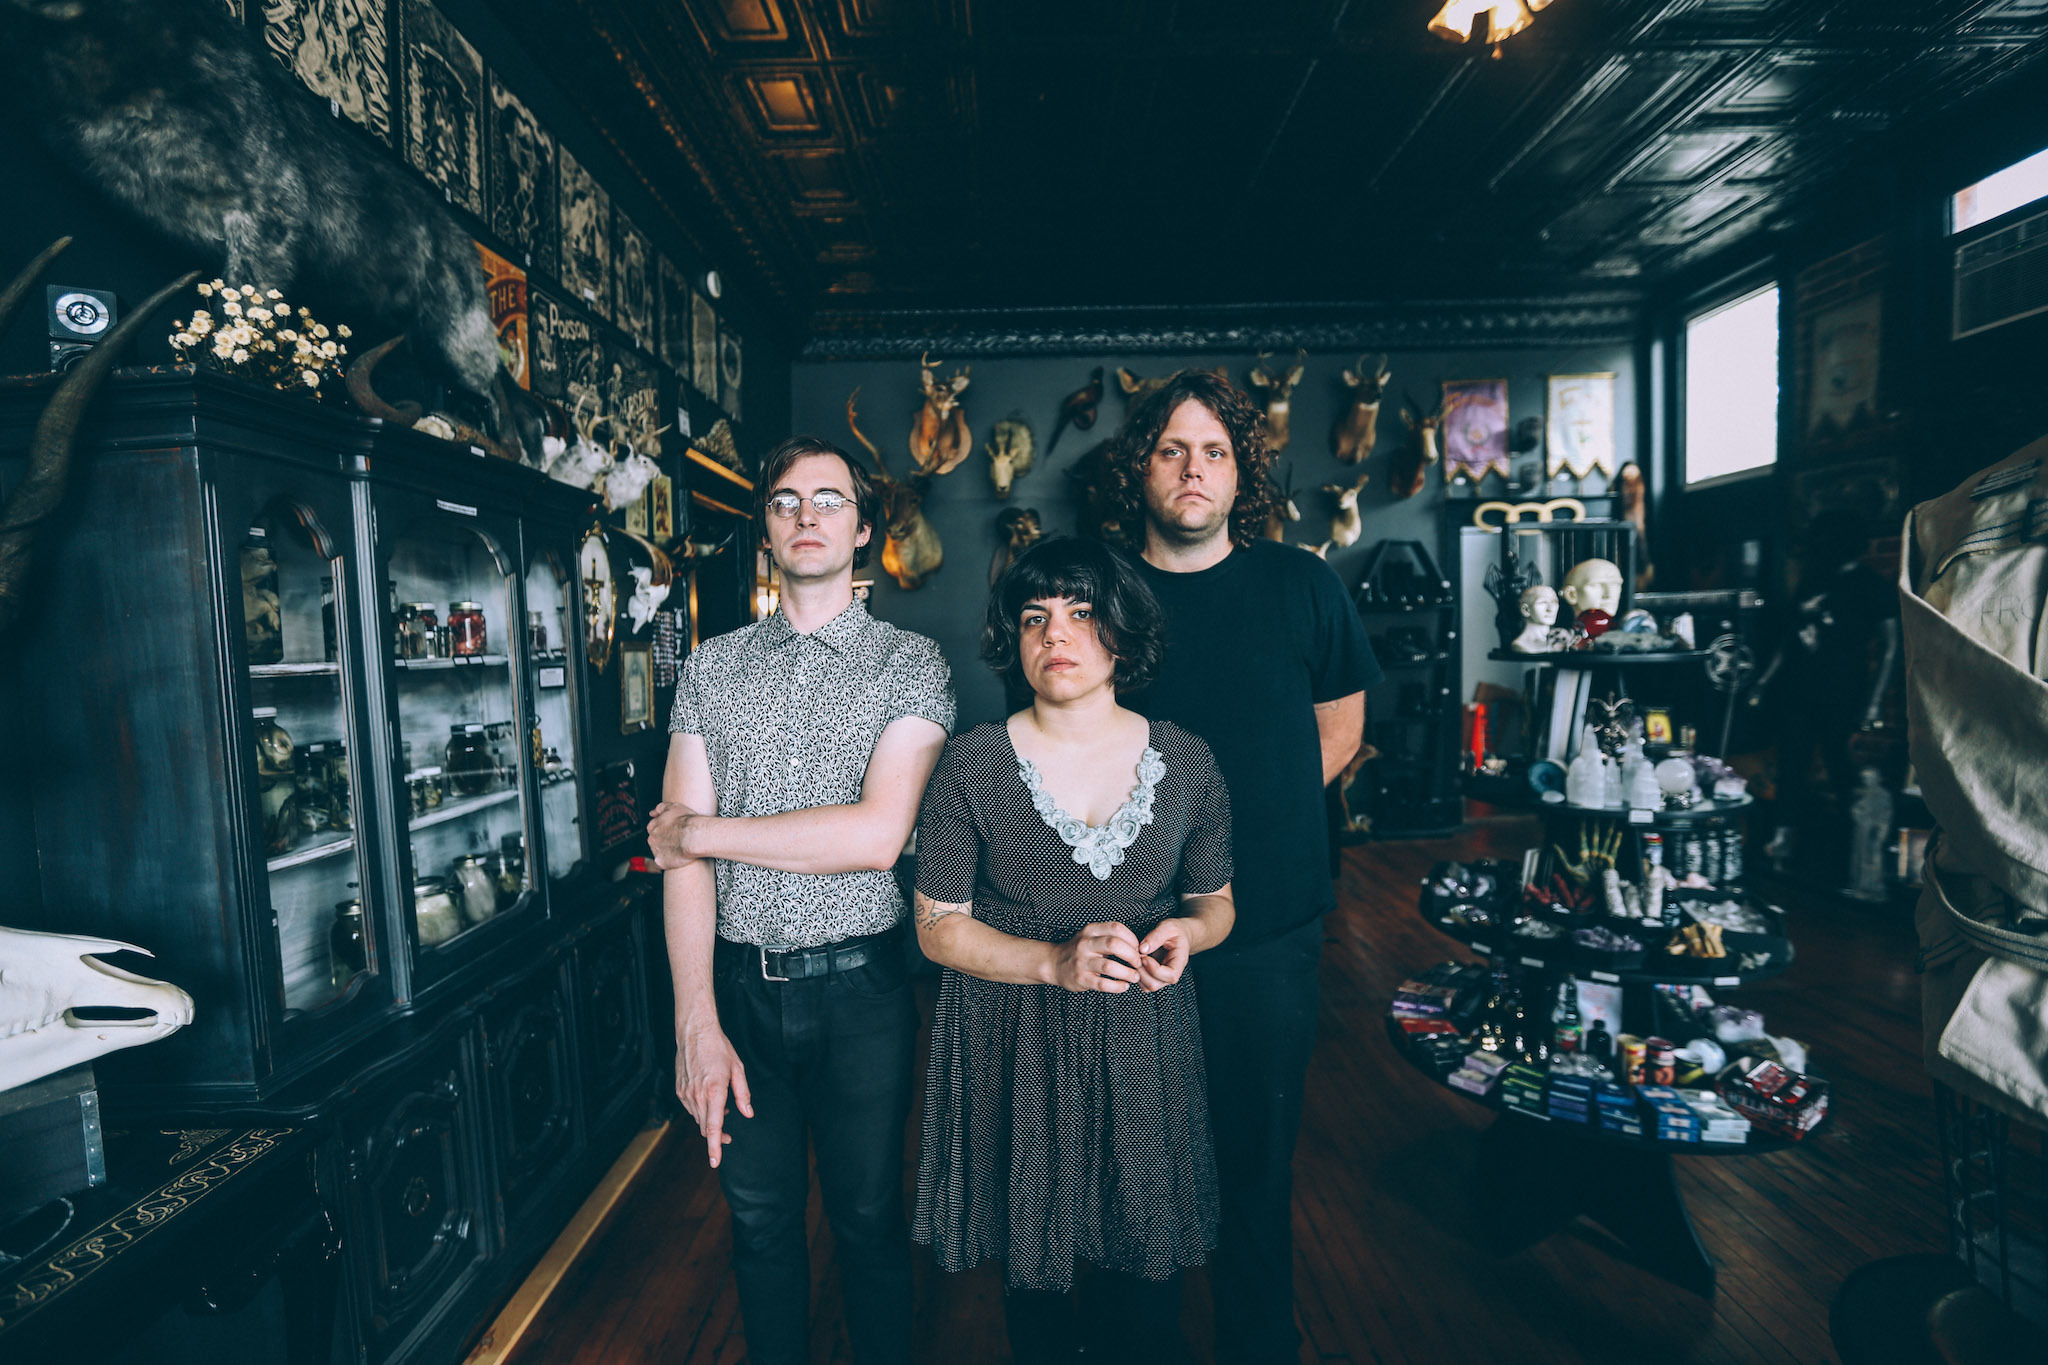 Screaming Females' Marissa Paternoster talks new album, surviving Catholic school and covering Taylor Swift